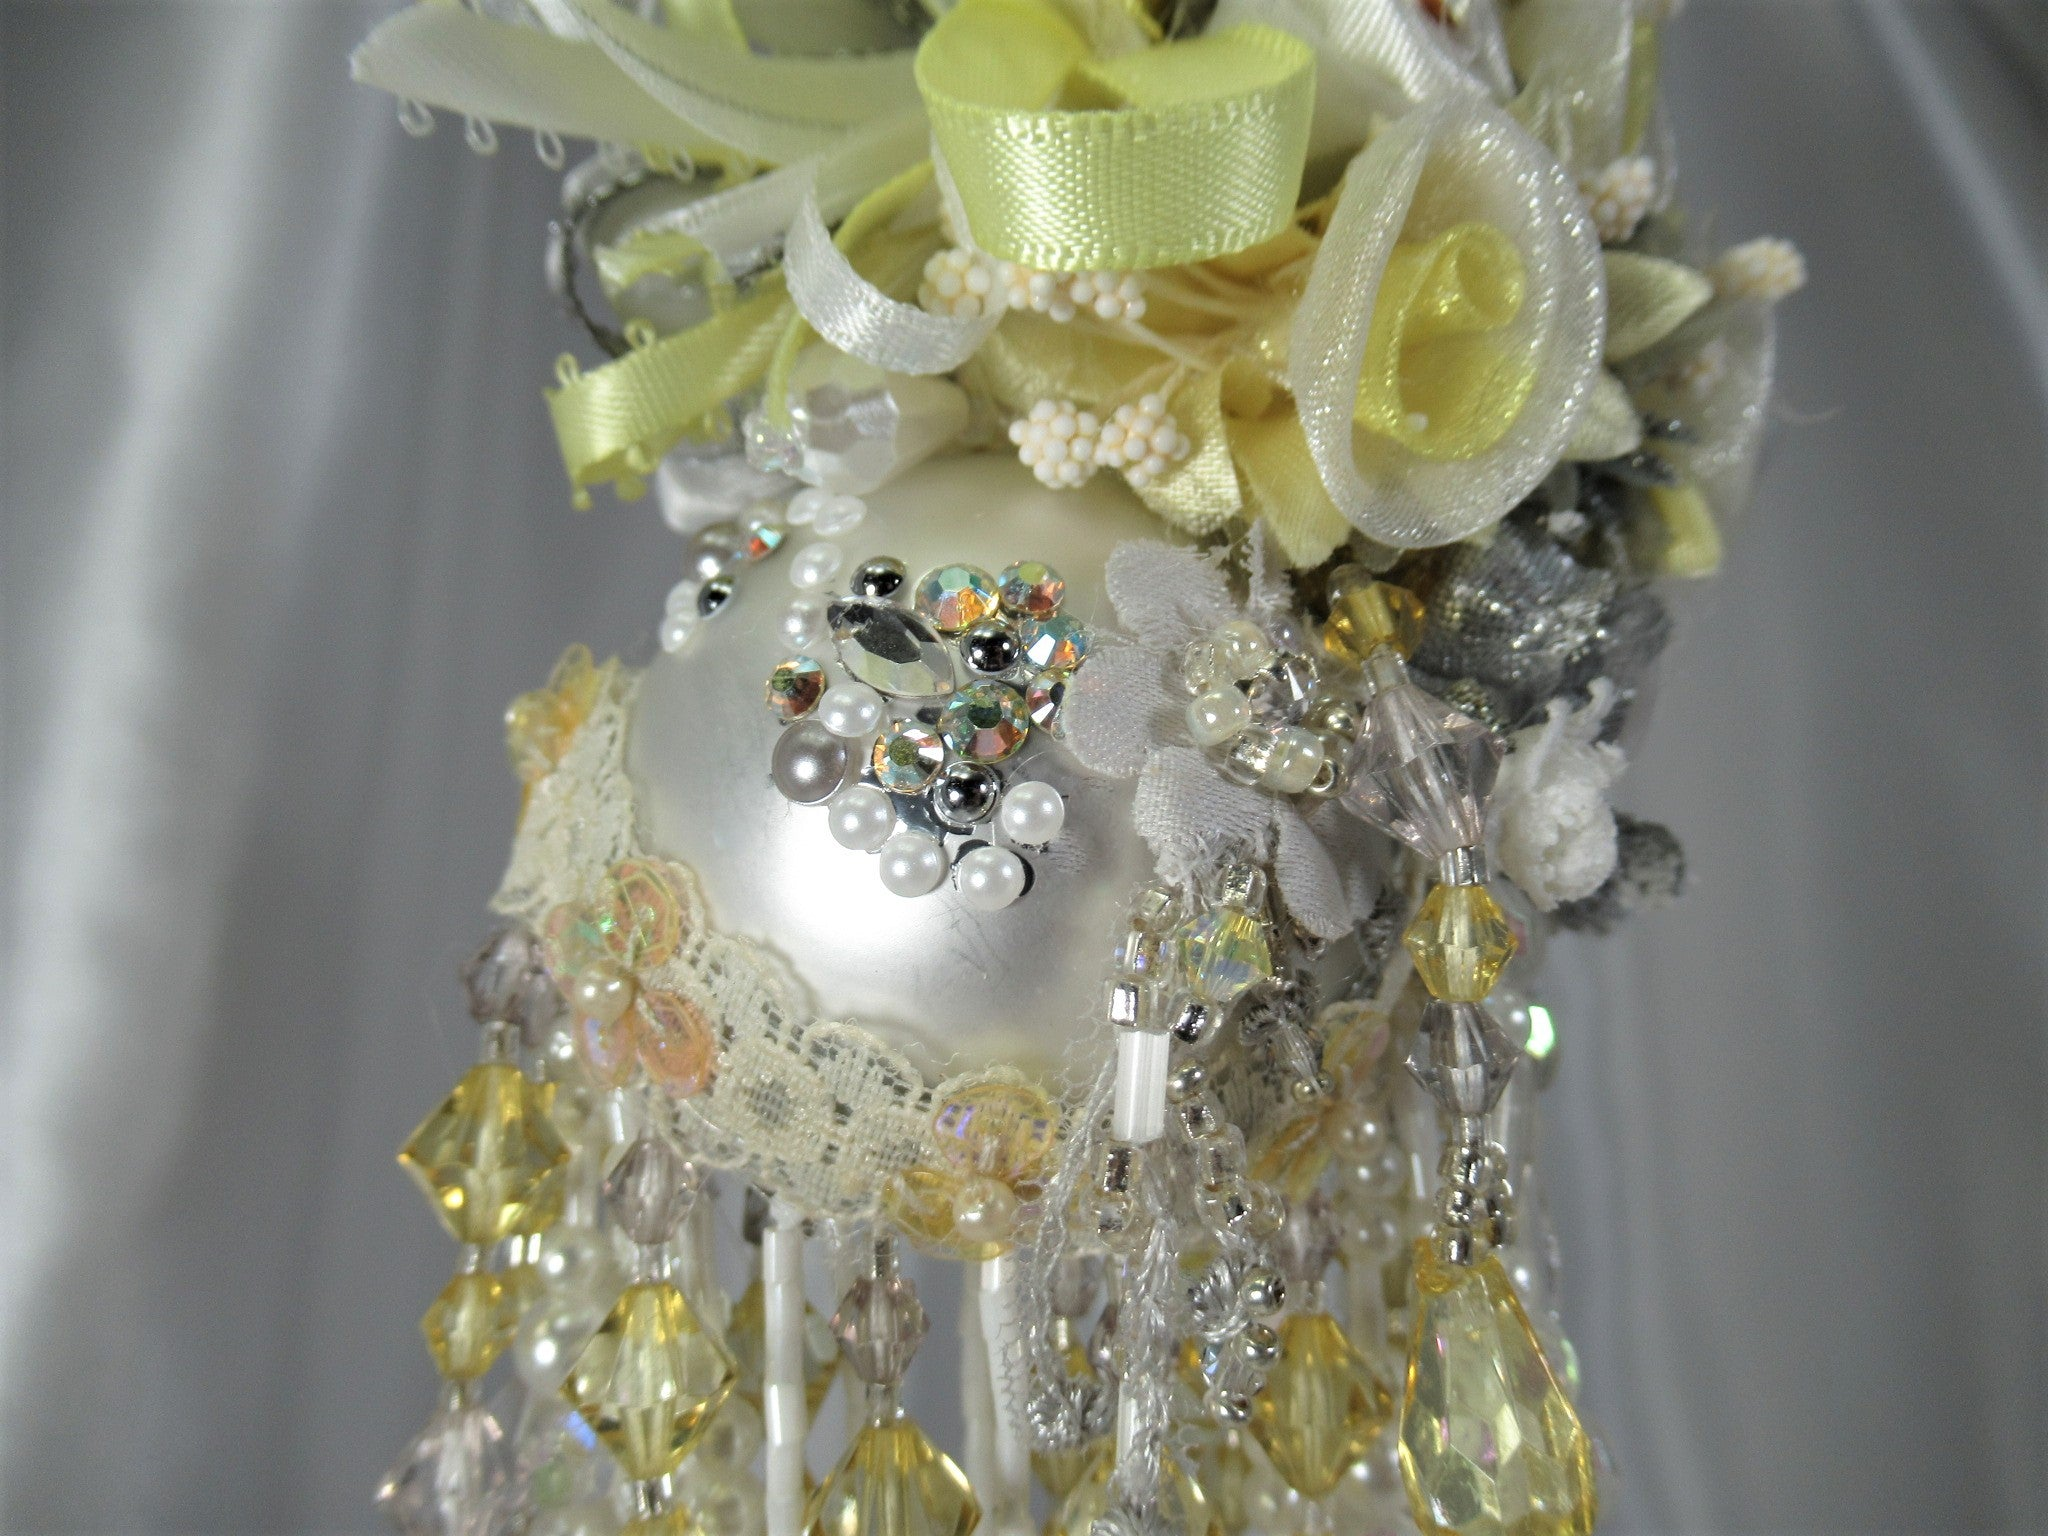 Yellow, White and Gray Detailed Small Victorian Ornament - Odyssey Creations